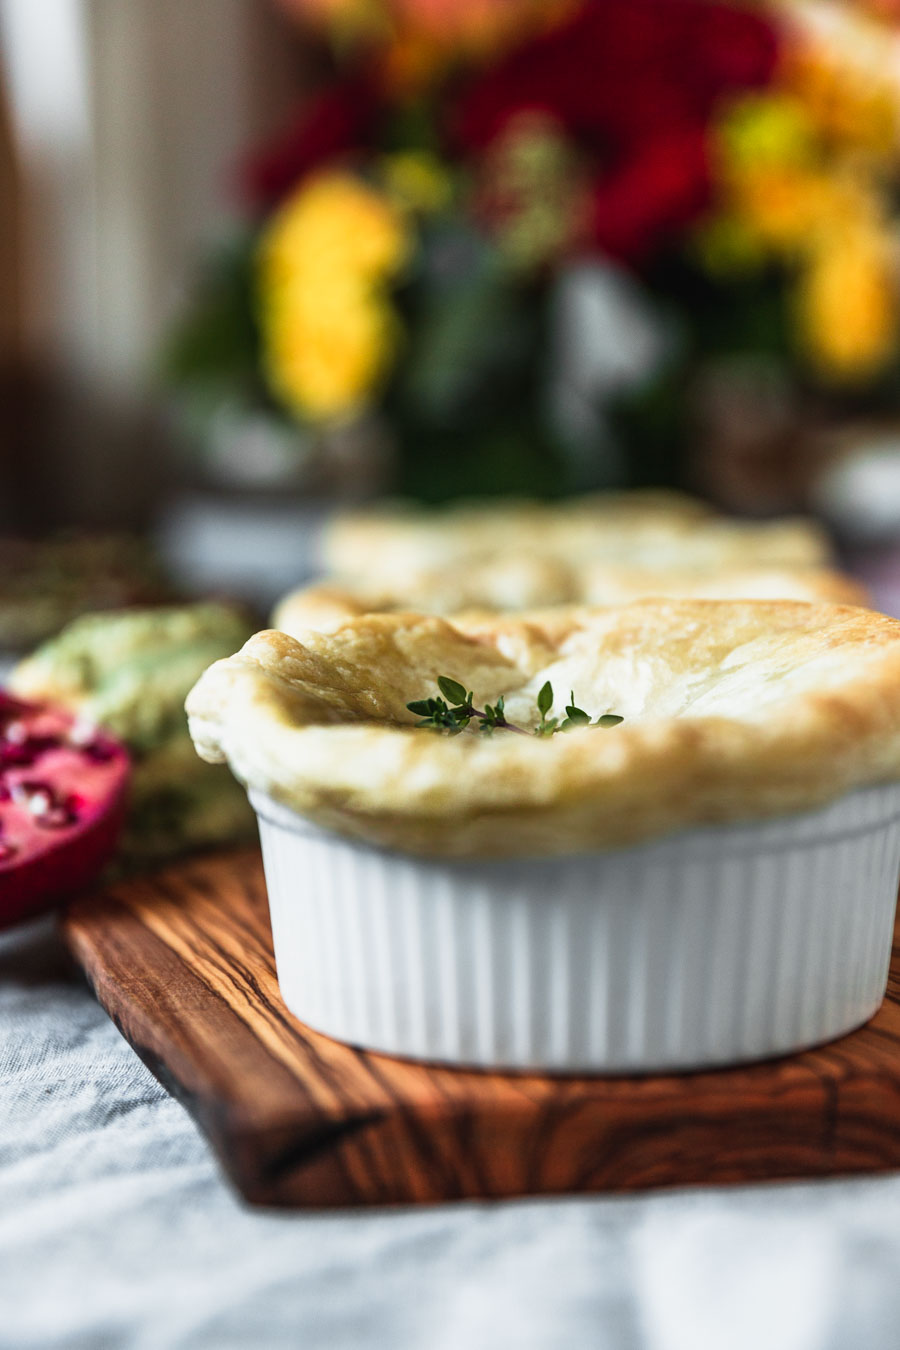 Tastes Like Chicken Pie recipe from the cookbook, Great Vegan Meals for the Carnivorous Family by Amanda Logan. Photo by Kari of Beautiful Ingredient. #vegan #vegandinner #plantbased #familydinner #dinner #chickenpotpie #potpie #veganchicken #veganforcarnivore #cookbook #recipe